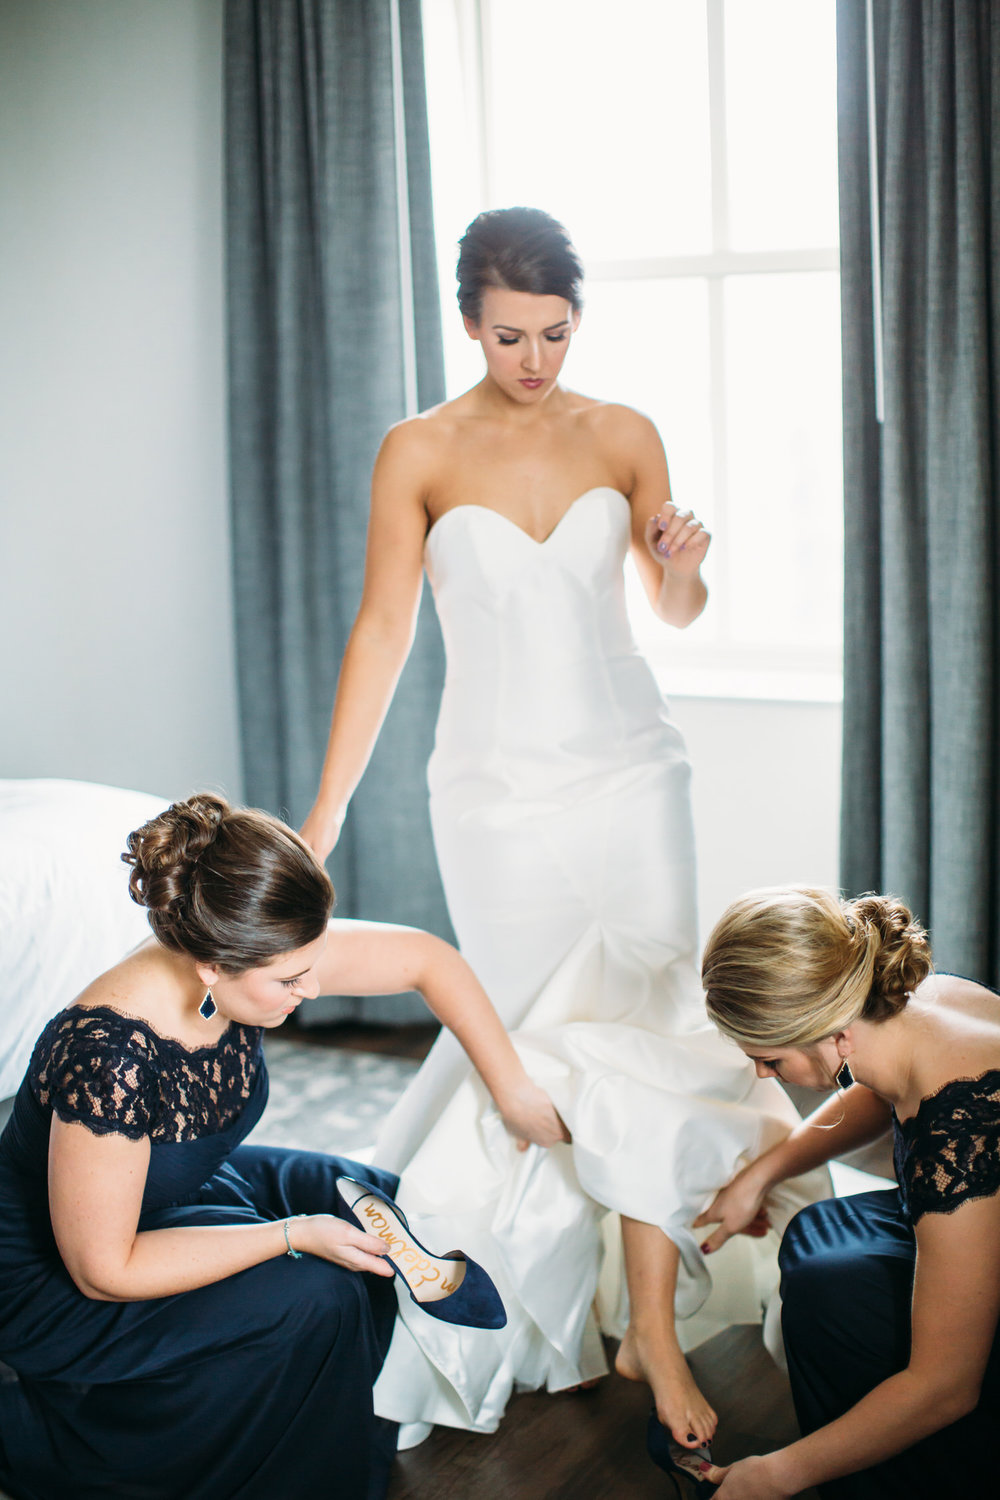 Bride getting ready with bridesmaids, st louis wedding photographer